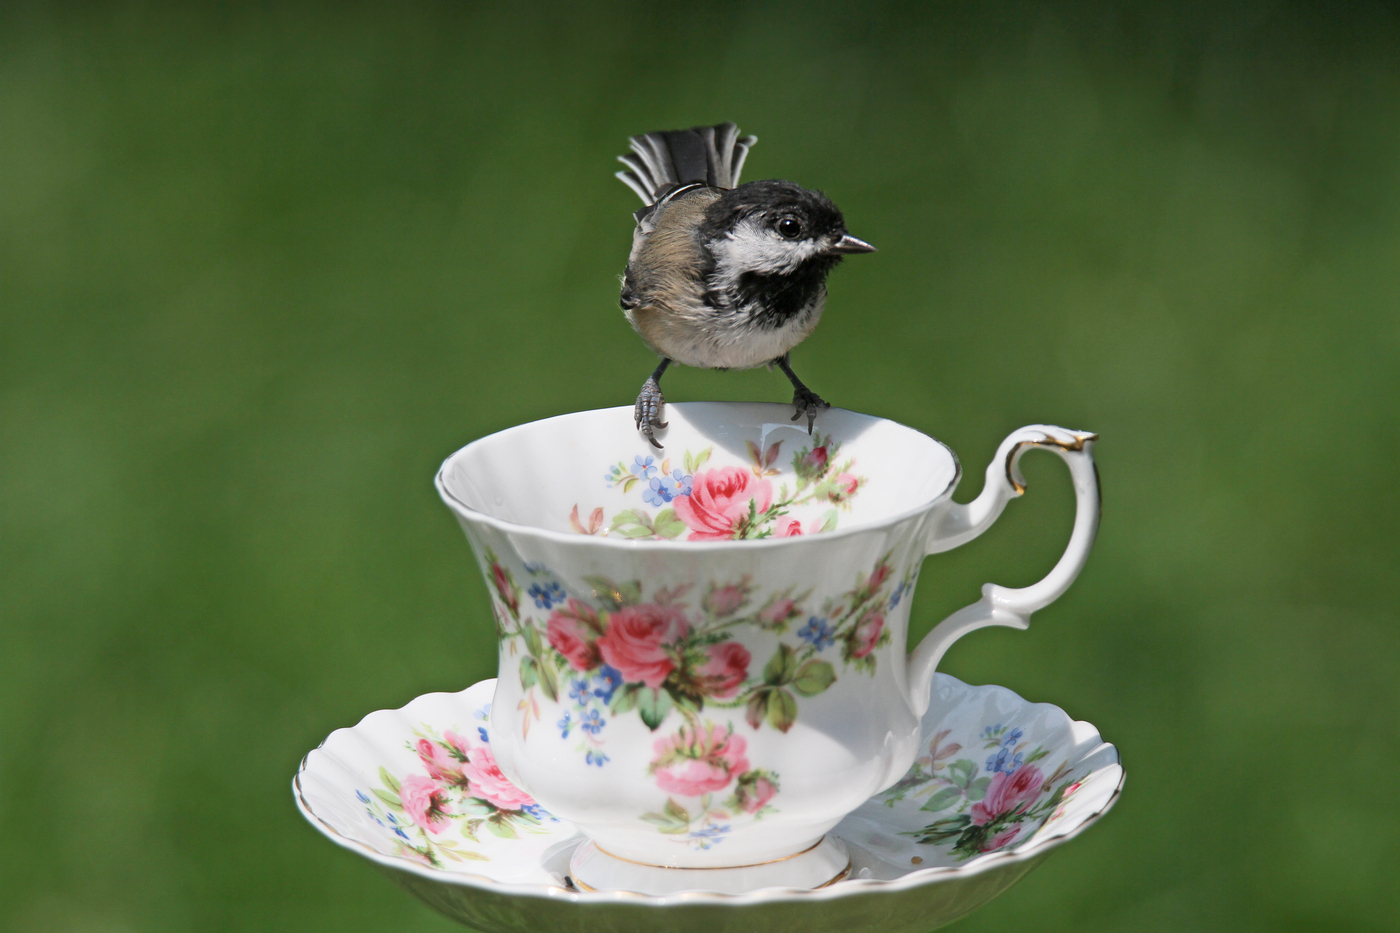 Chickadee at Teacup #26